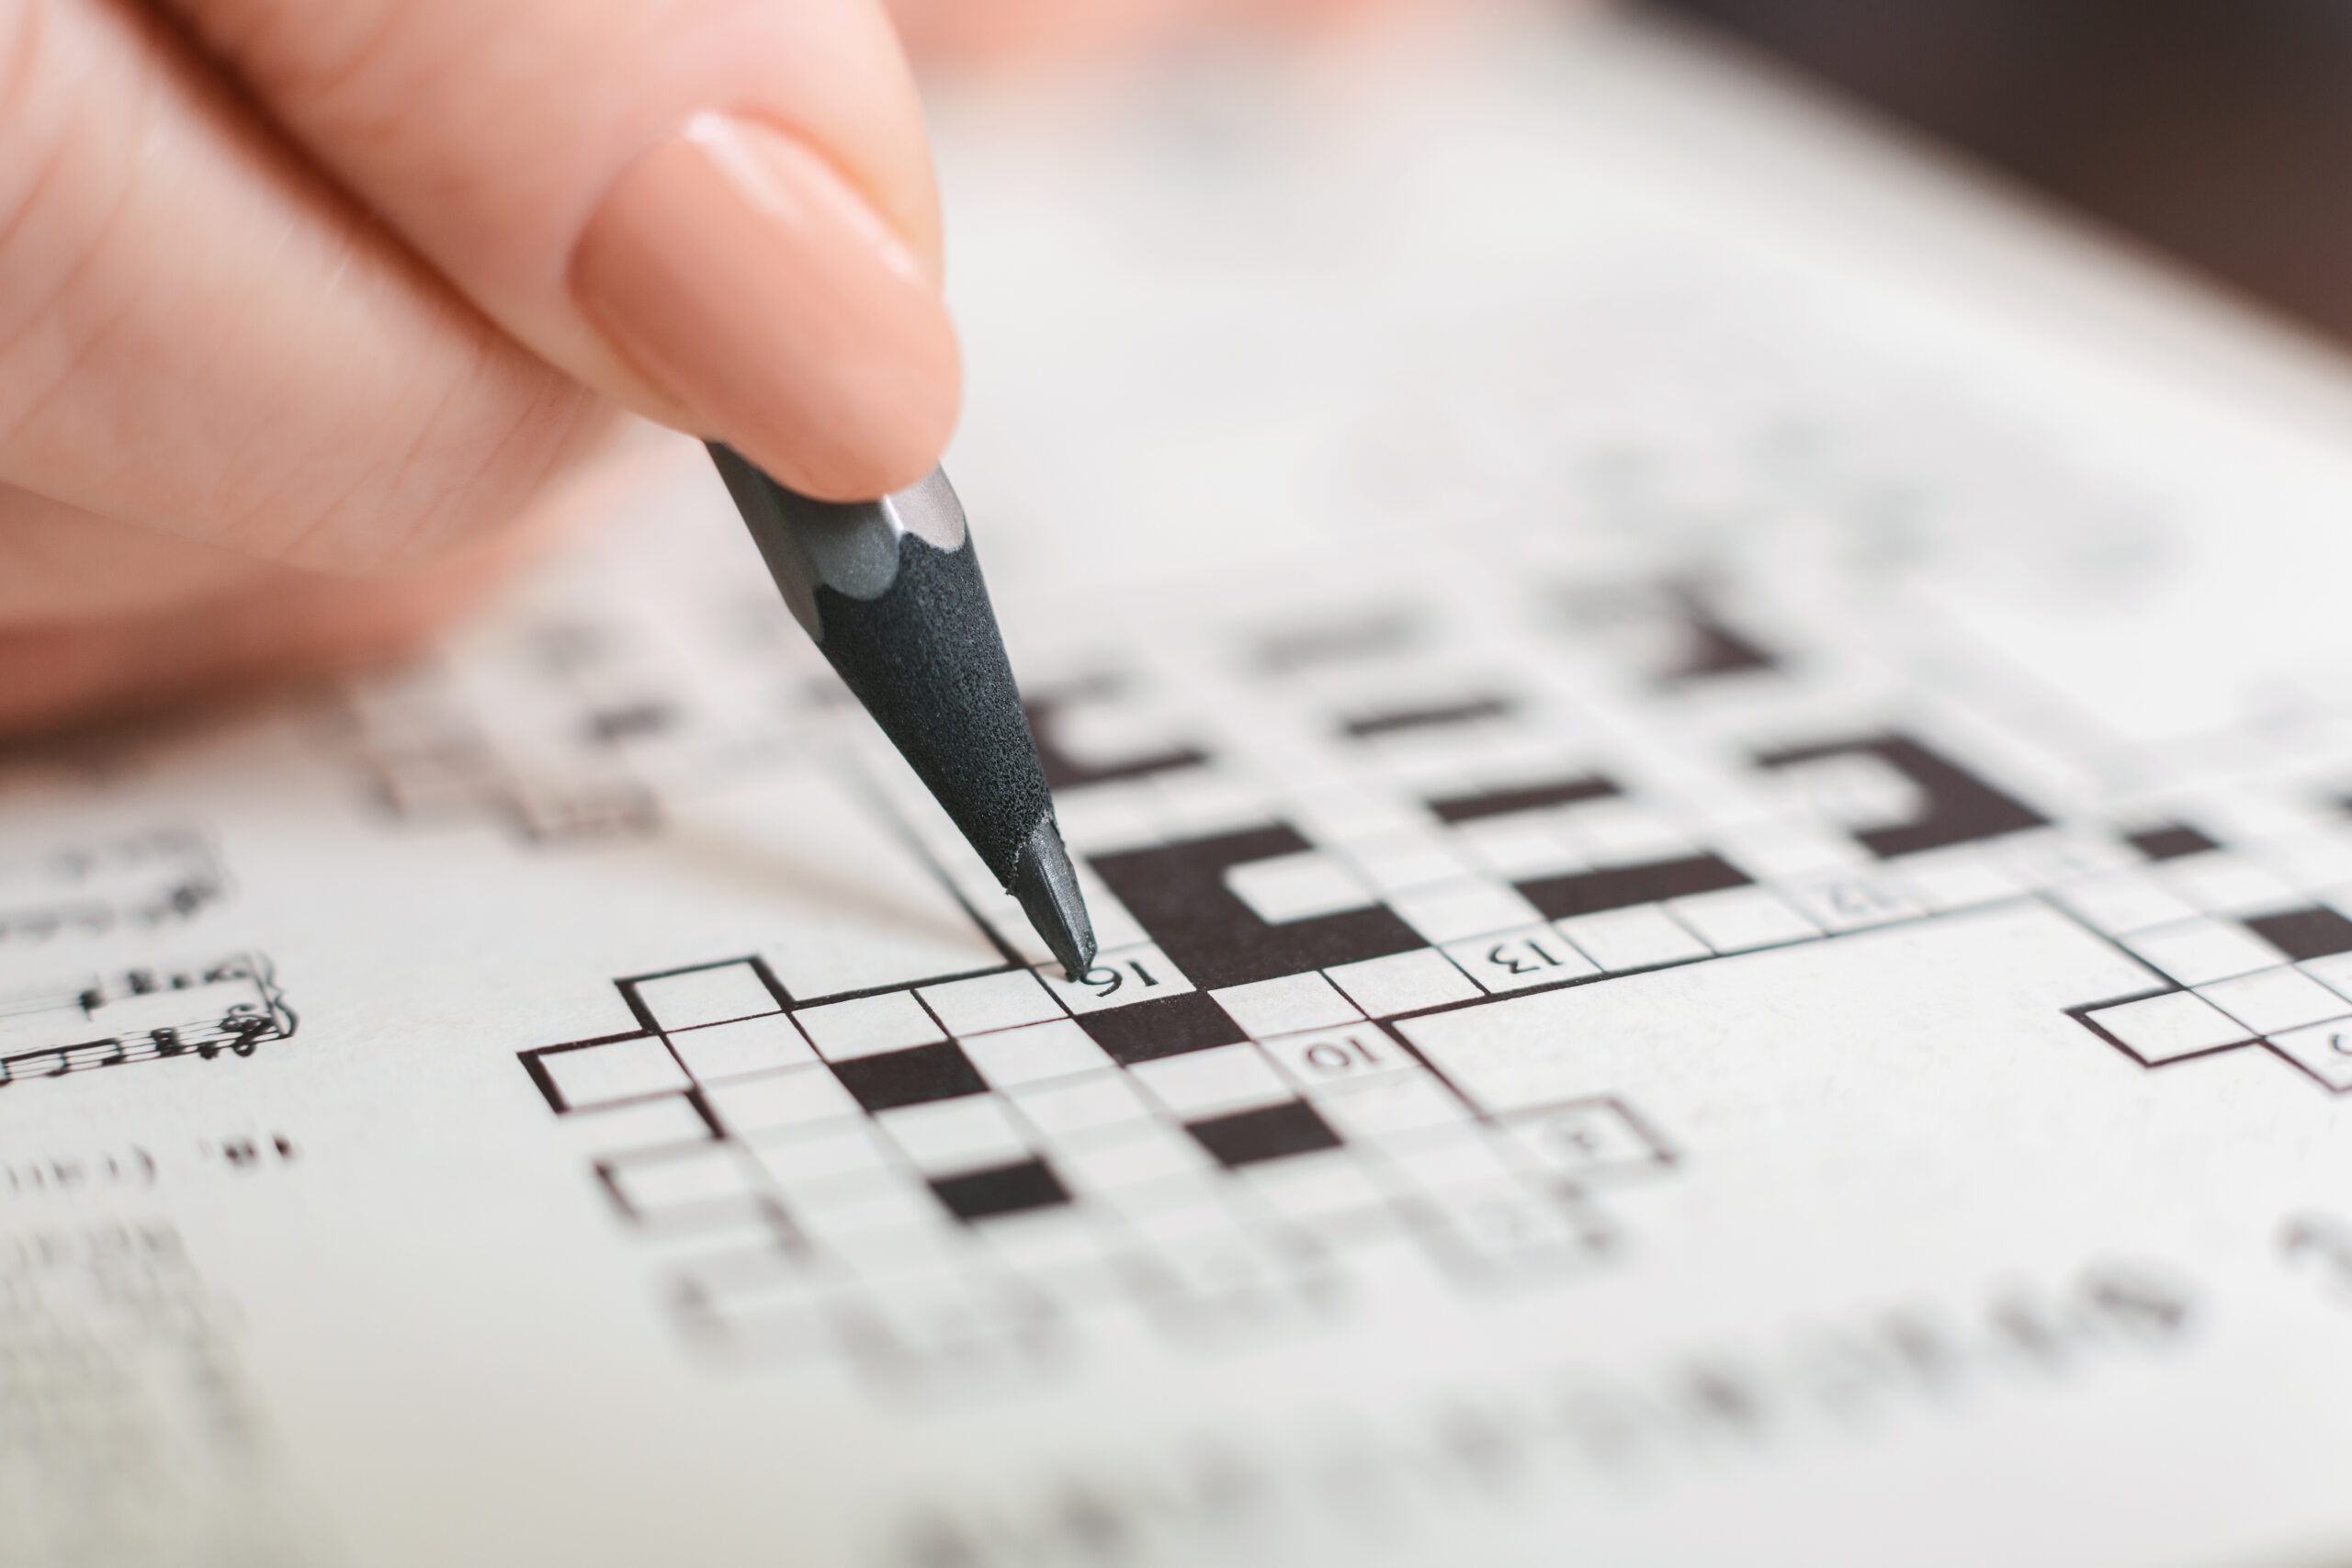 To crossword in a time of crisis